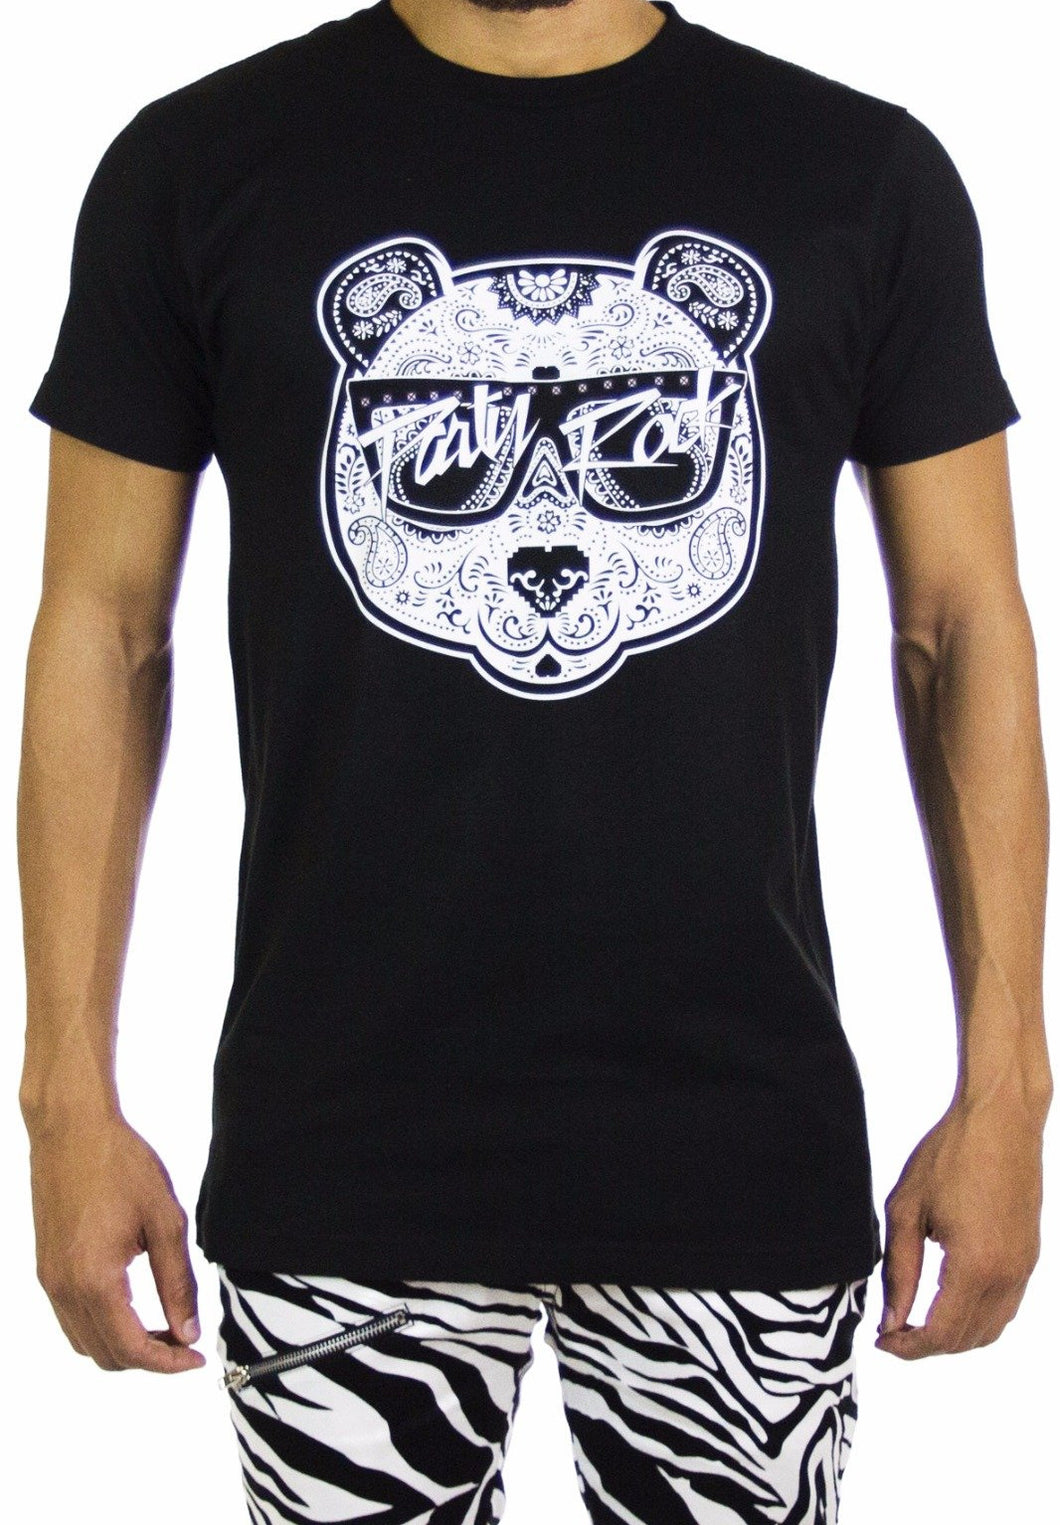 Black & White Panda Tee (Limited Edition) - Party Rock Clothing REDFOO LMFAO